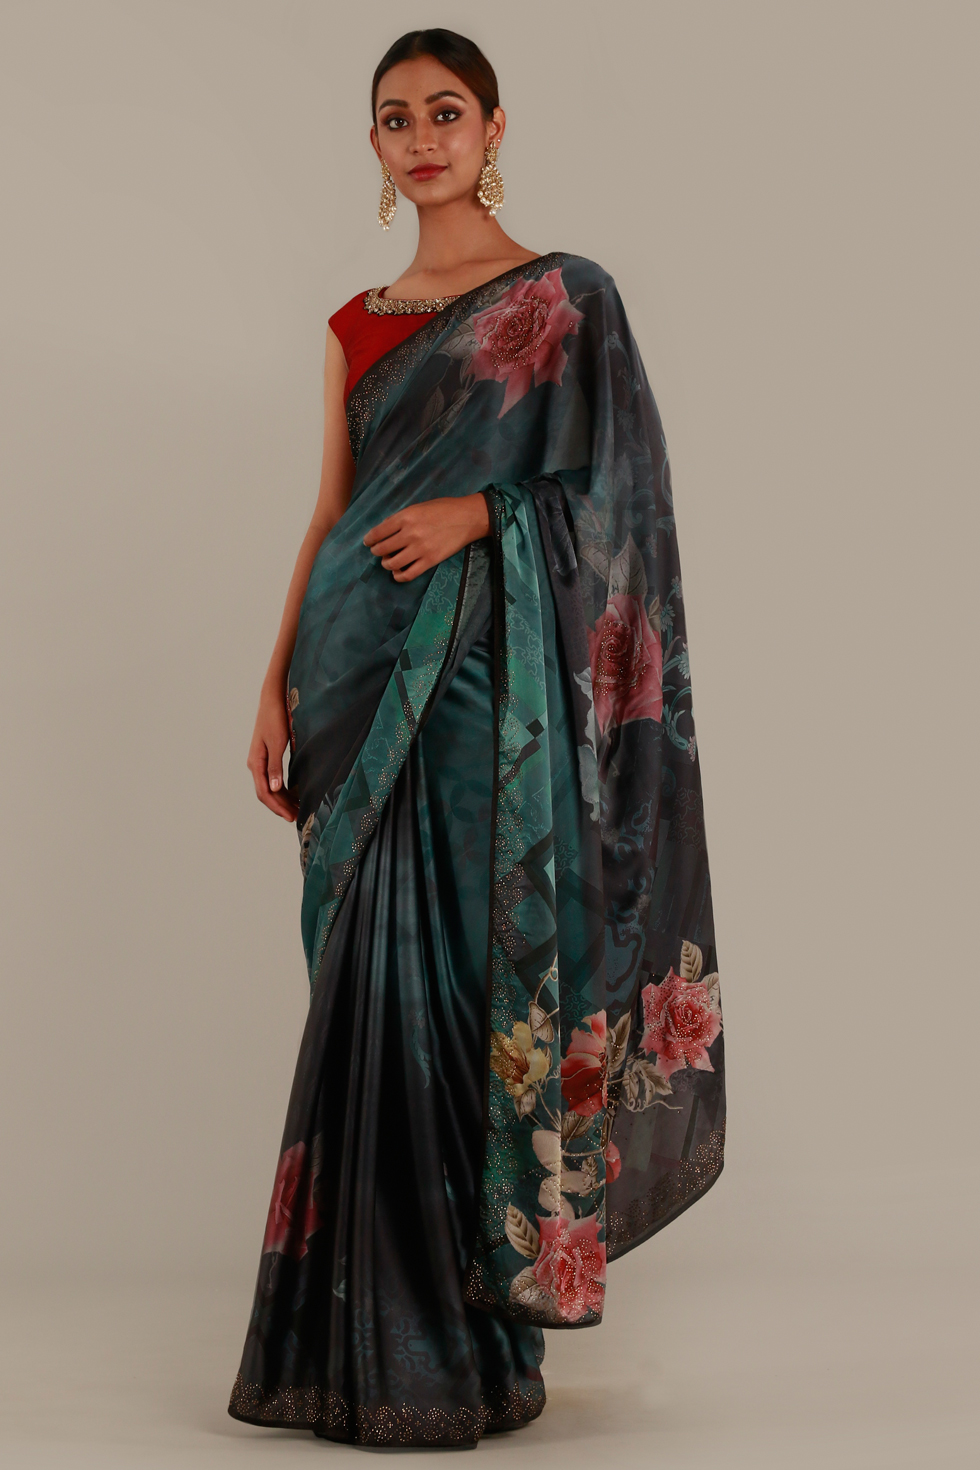 Blueish green classic saree with ombré effect, floral print and contrast red choli with keyhole back